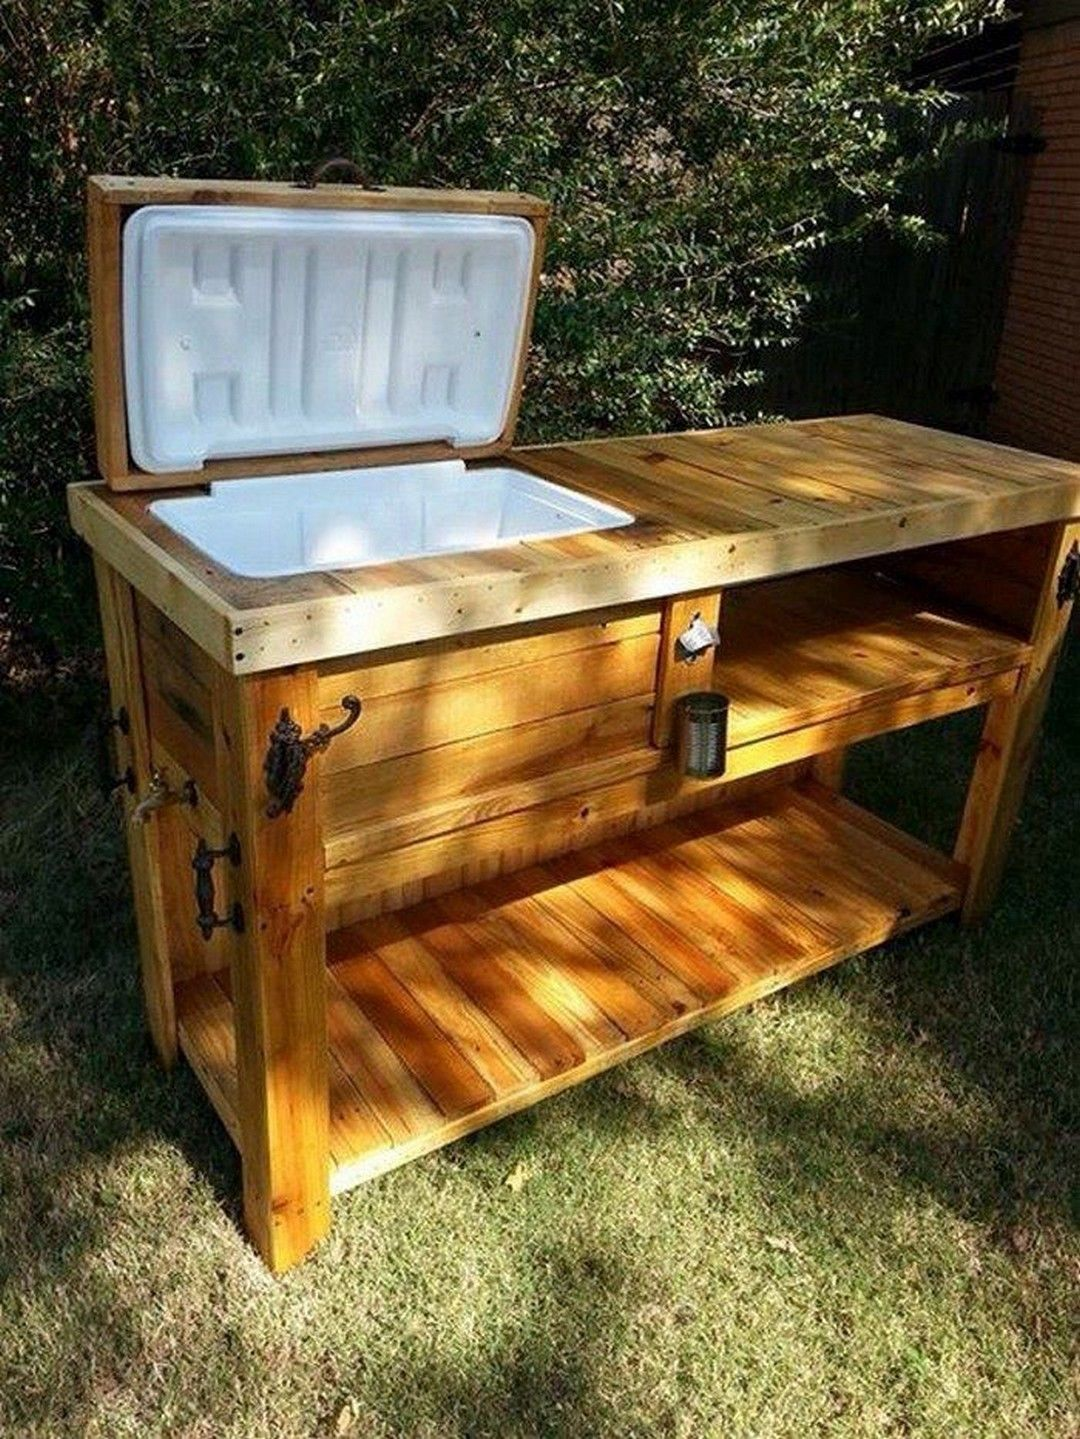 30 Great Outdoor Diy Project Http Alladecor Com 2019 04 05 30 Great Outdoor Diy Project Pallet Bar Diy Rustic Outdoor Kitchens Wooden Ice Chest